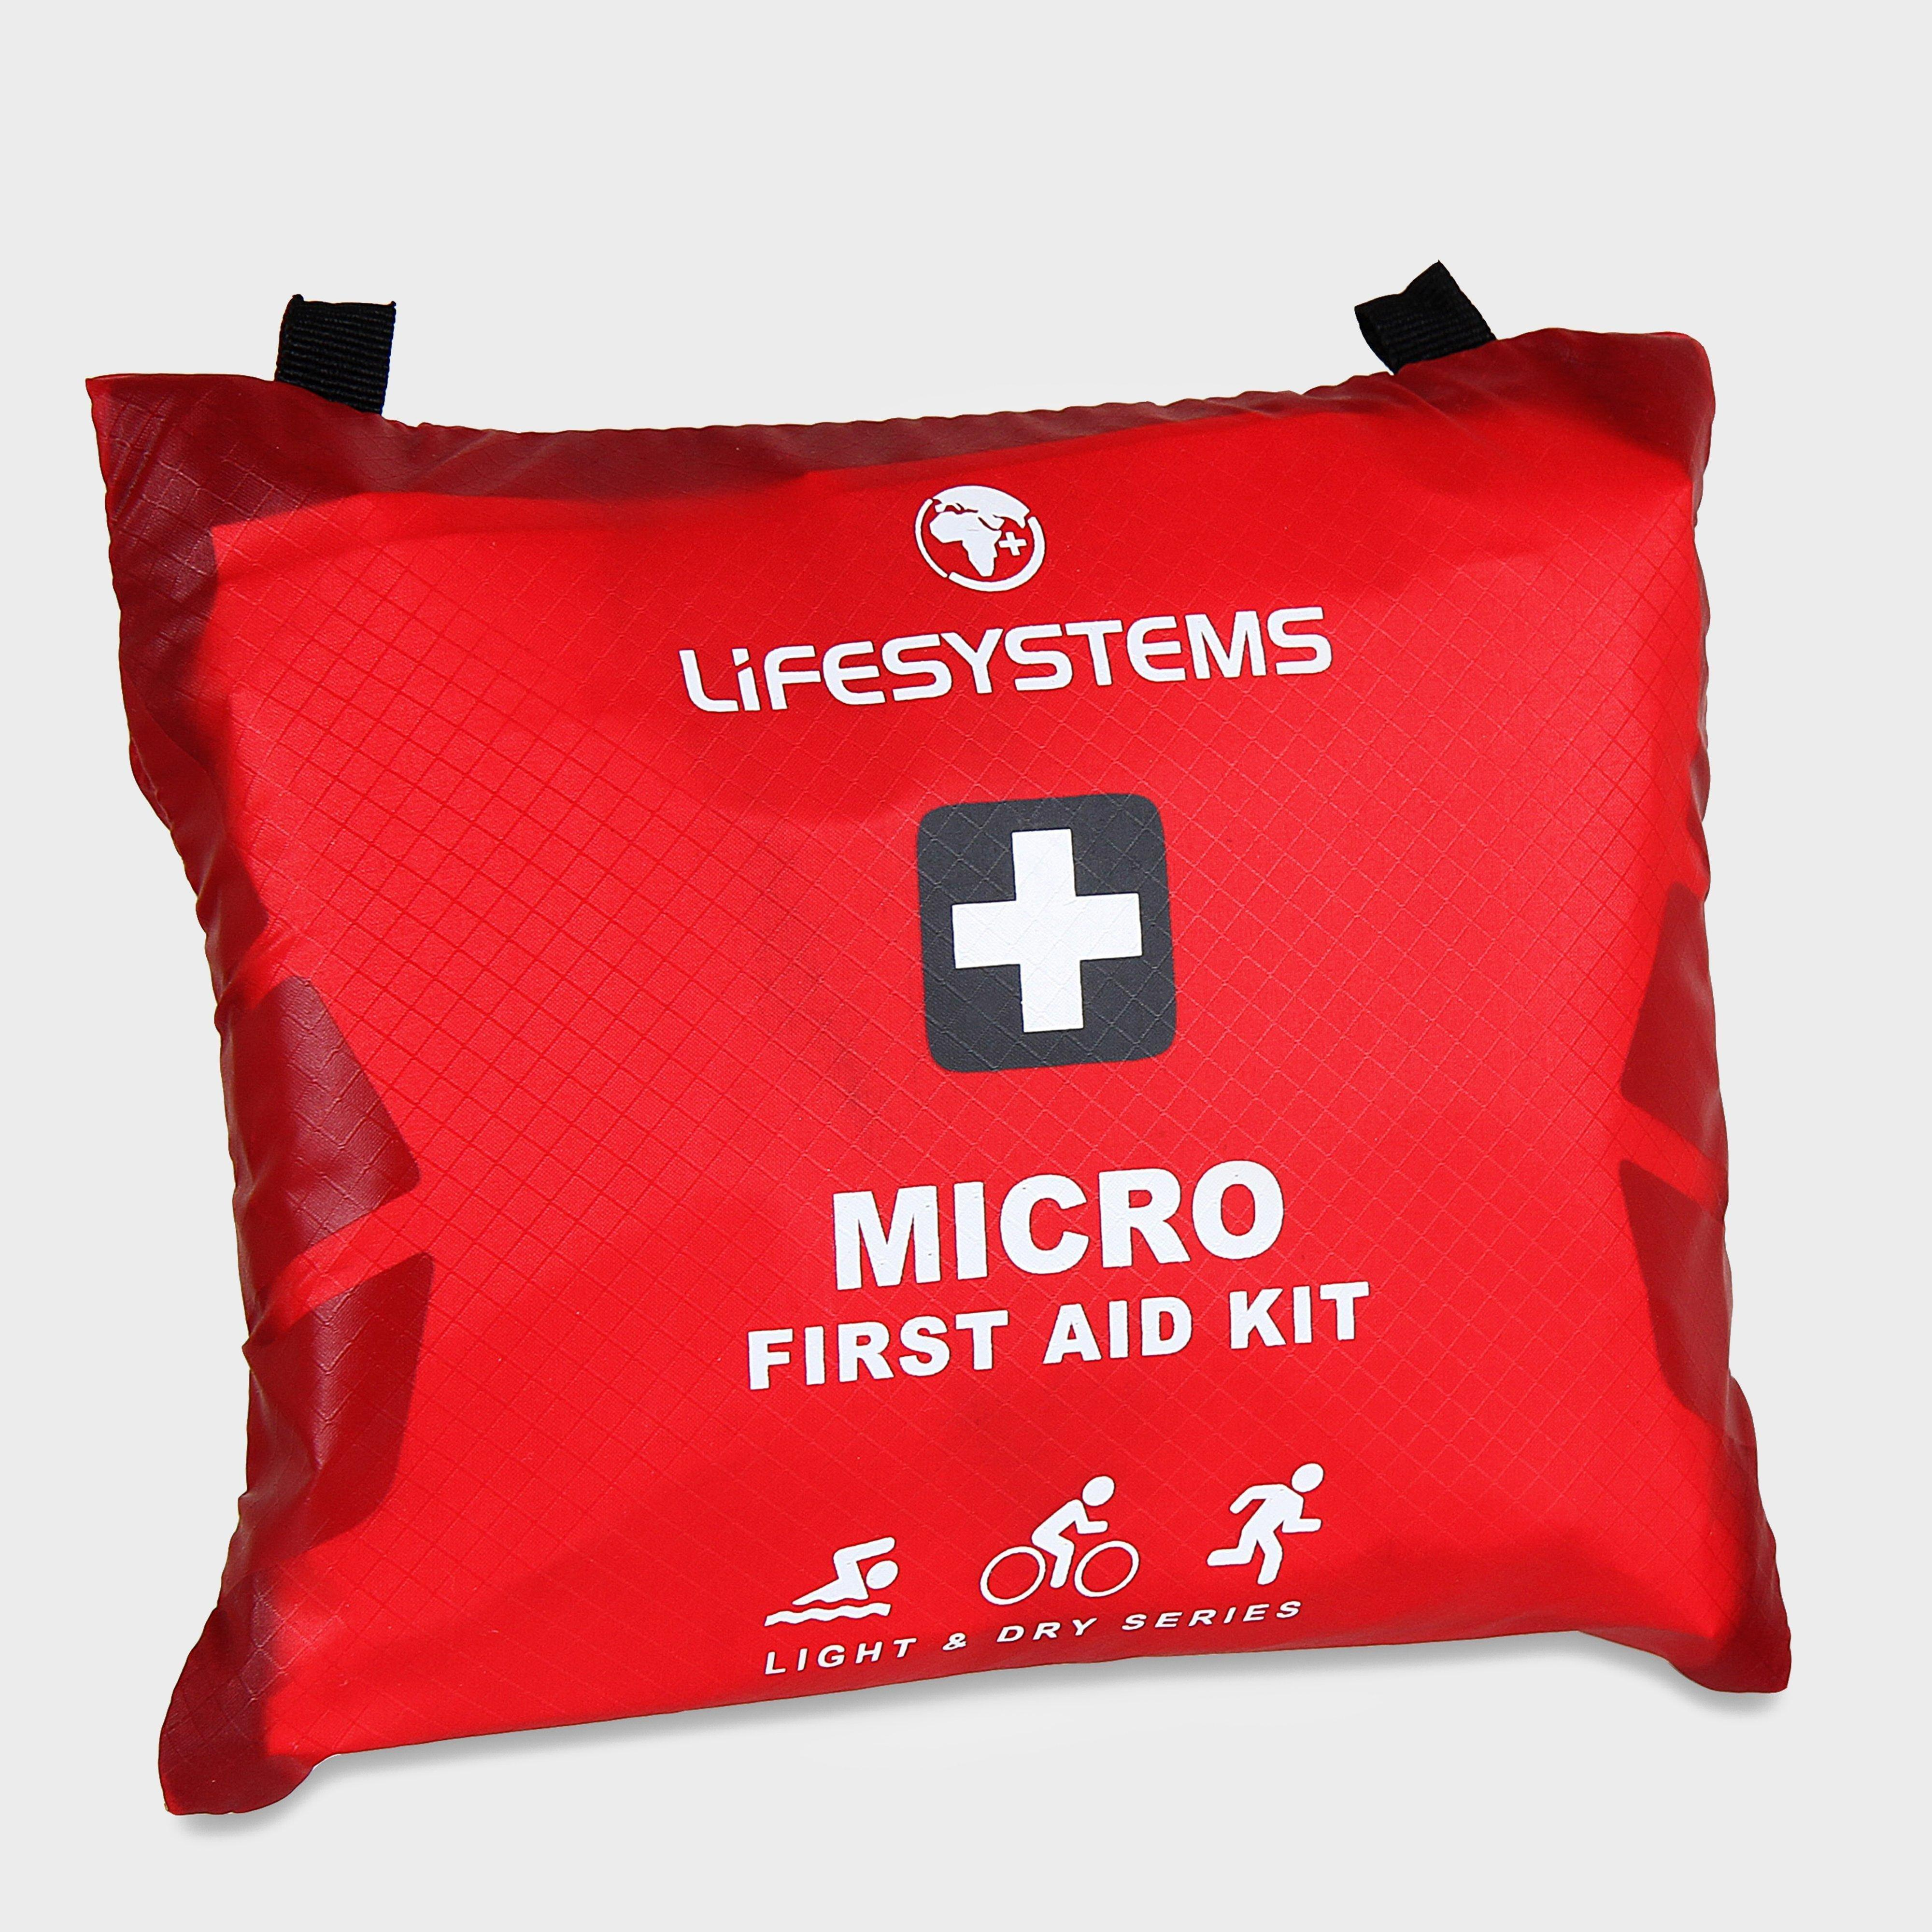 Lifesystems Lifesystems Light & Dry Micro First Aid Kit - Red, Red